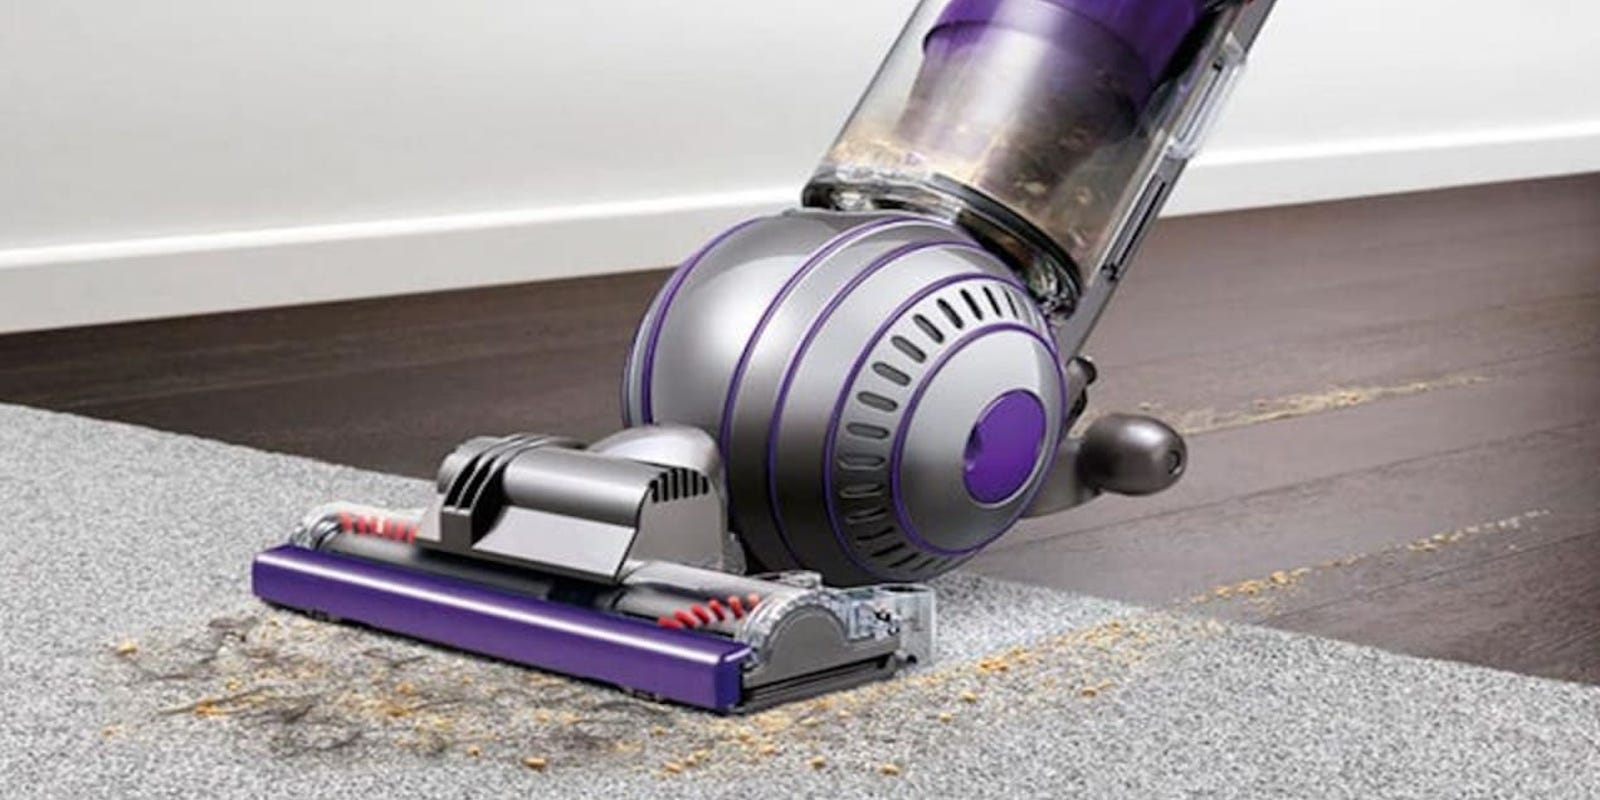 You can get a ton of Dyson vacuums on sale right now—and they're up to $100 off